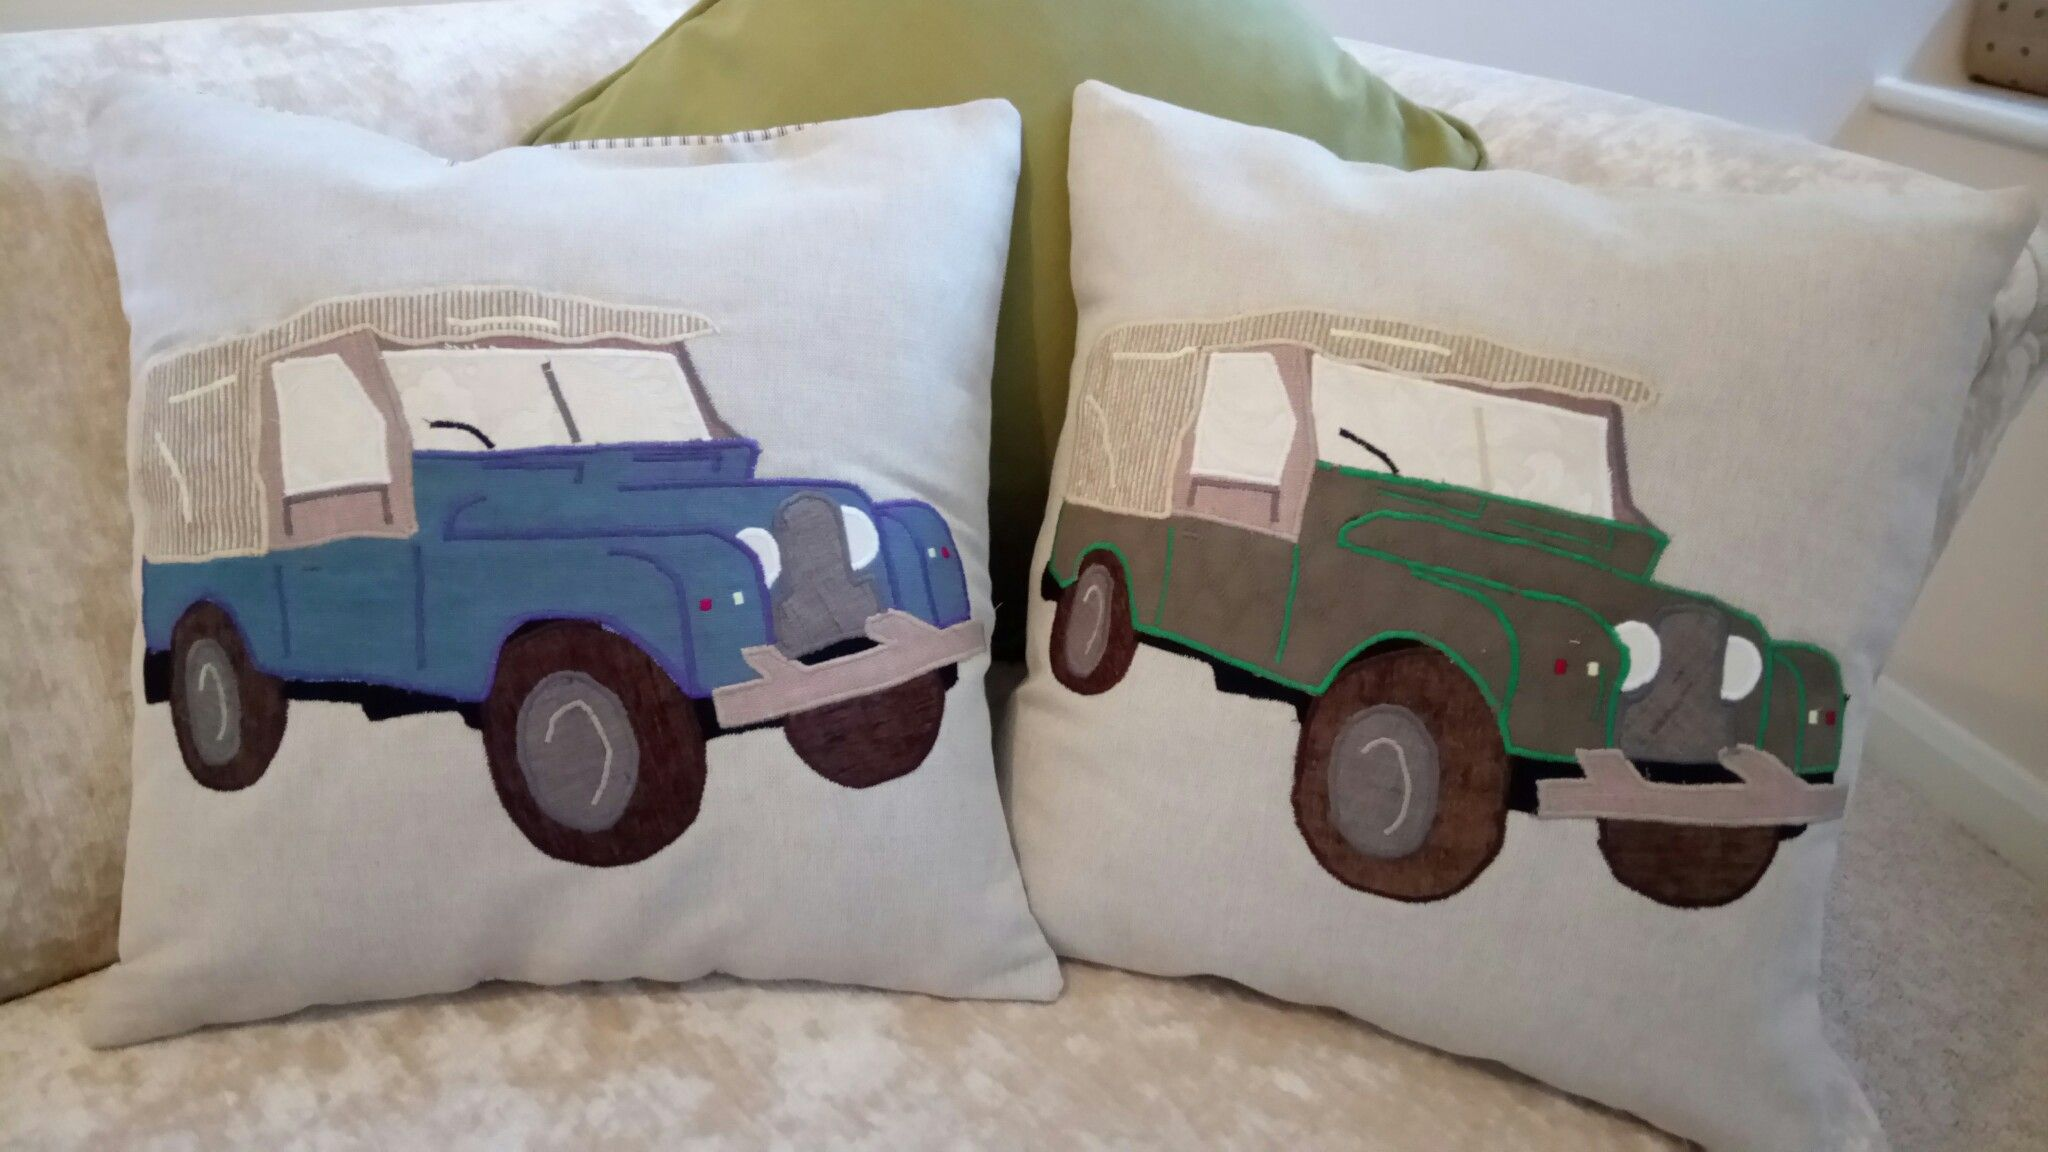 Series 1 Landrover cushion - 45x45cm - hollow fiber filling, cotton ticking reverse - www.ByeBrytshi.com